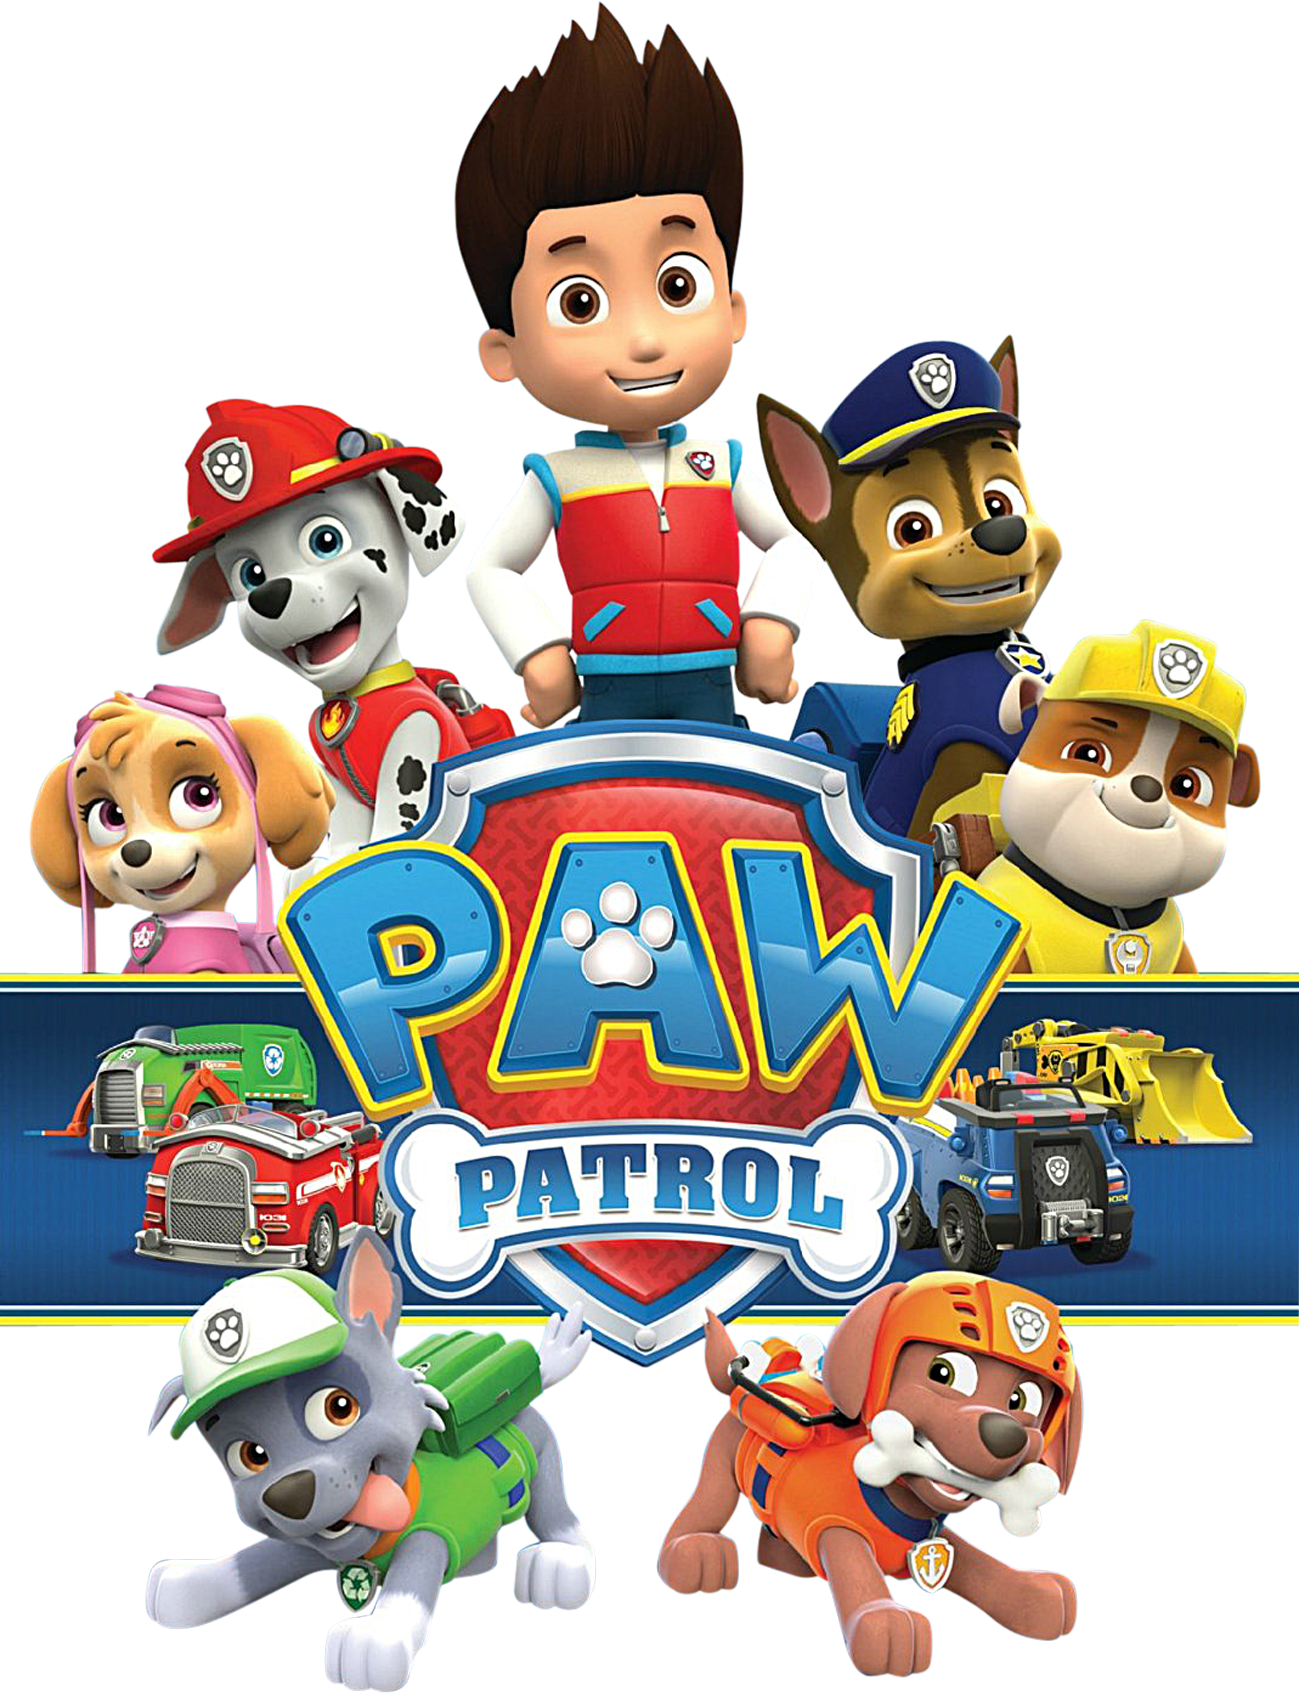 Miracles of jesus clipart. Paw patrol images png